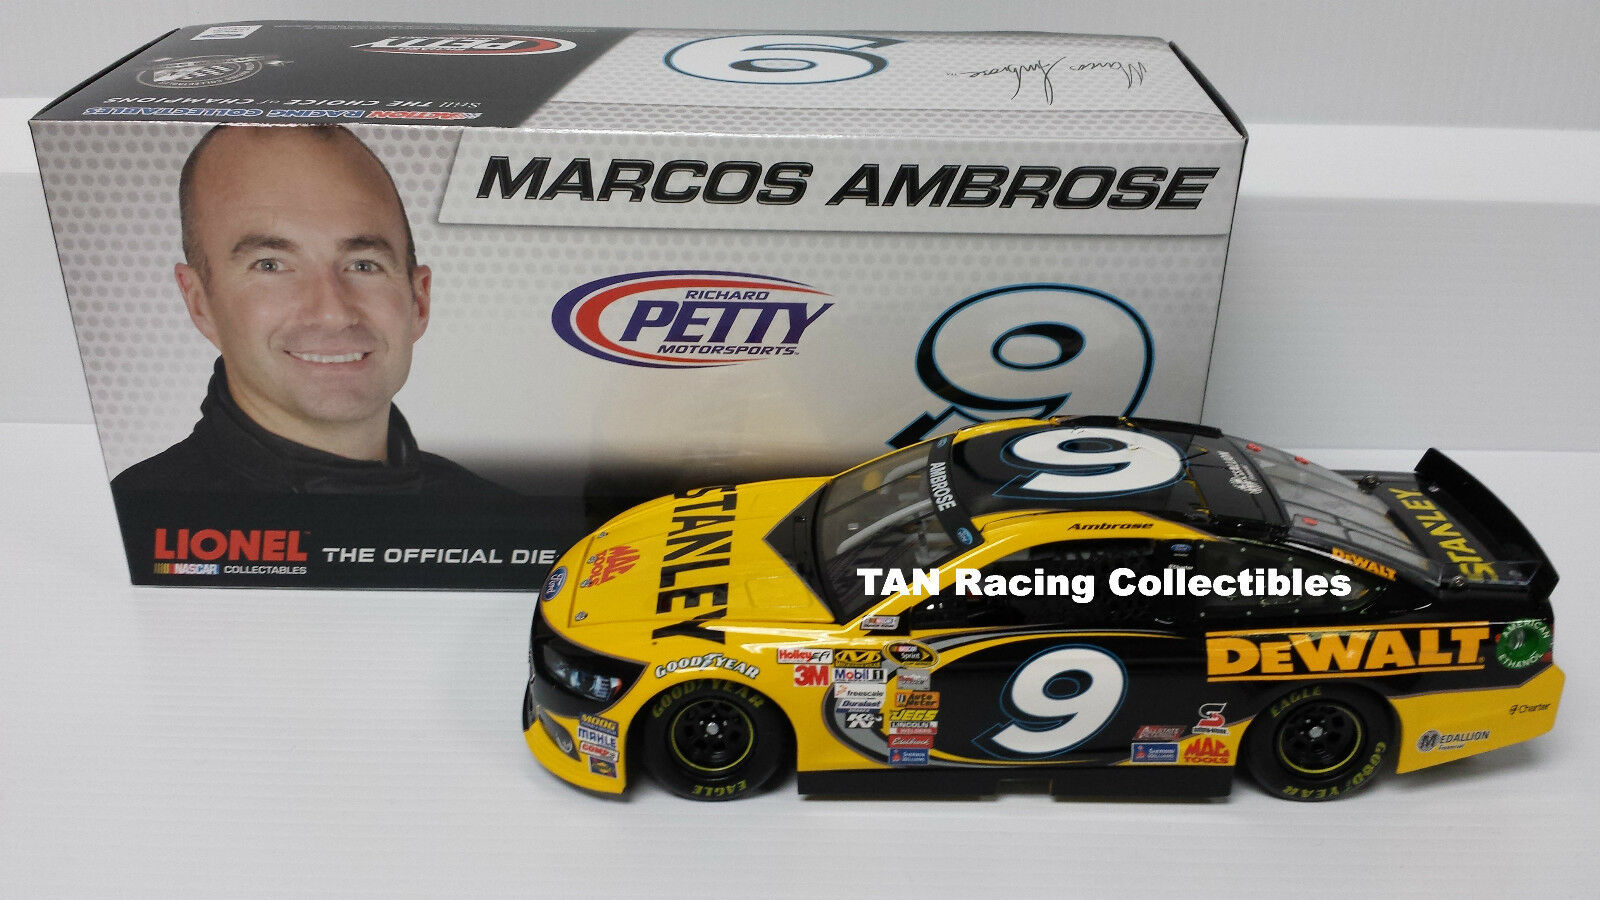 Marcos Marcos Marcos Ambpink 2013 Lionel Action Stanley Tools 2nd Half 1 24 FREE SHIP 184b6e